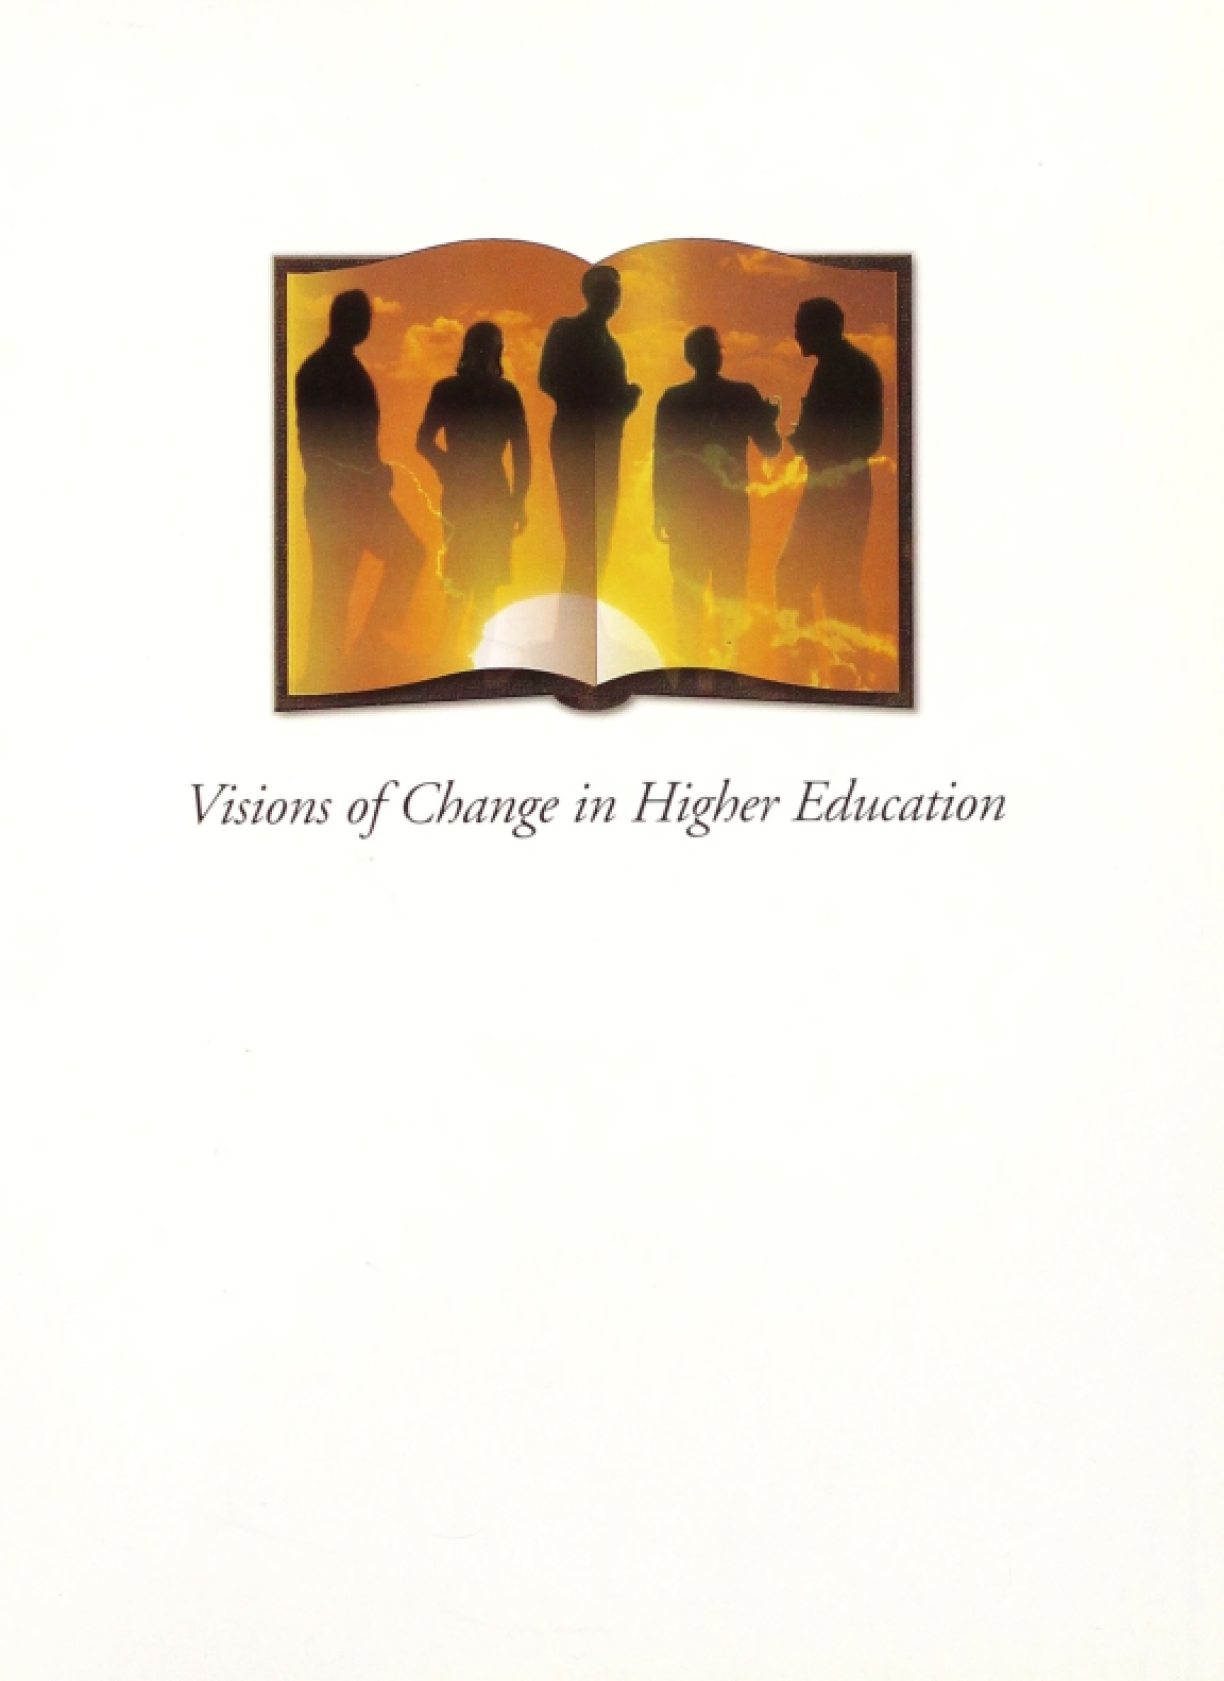 Visions of Change in Higher Education